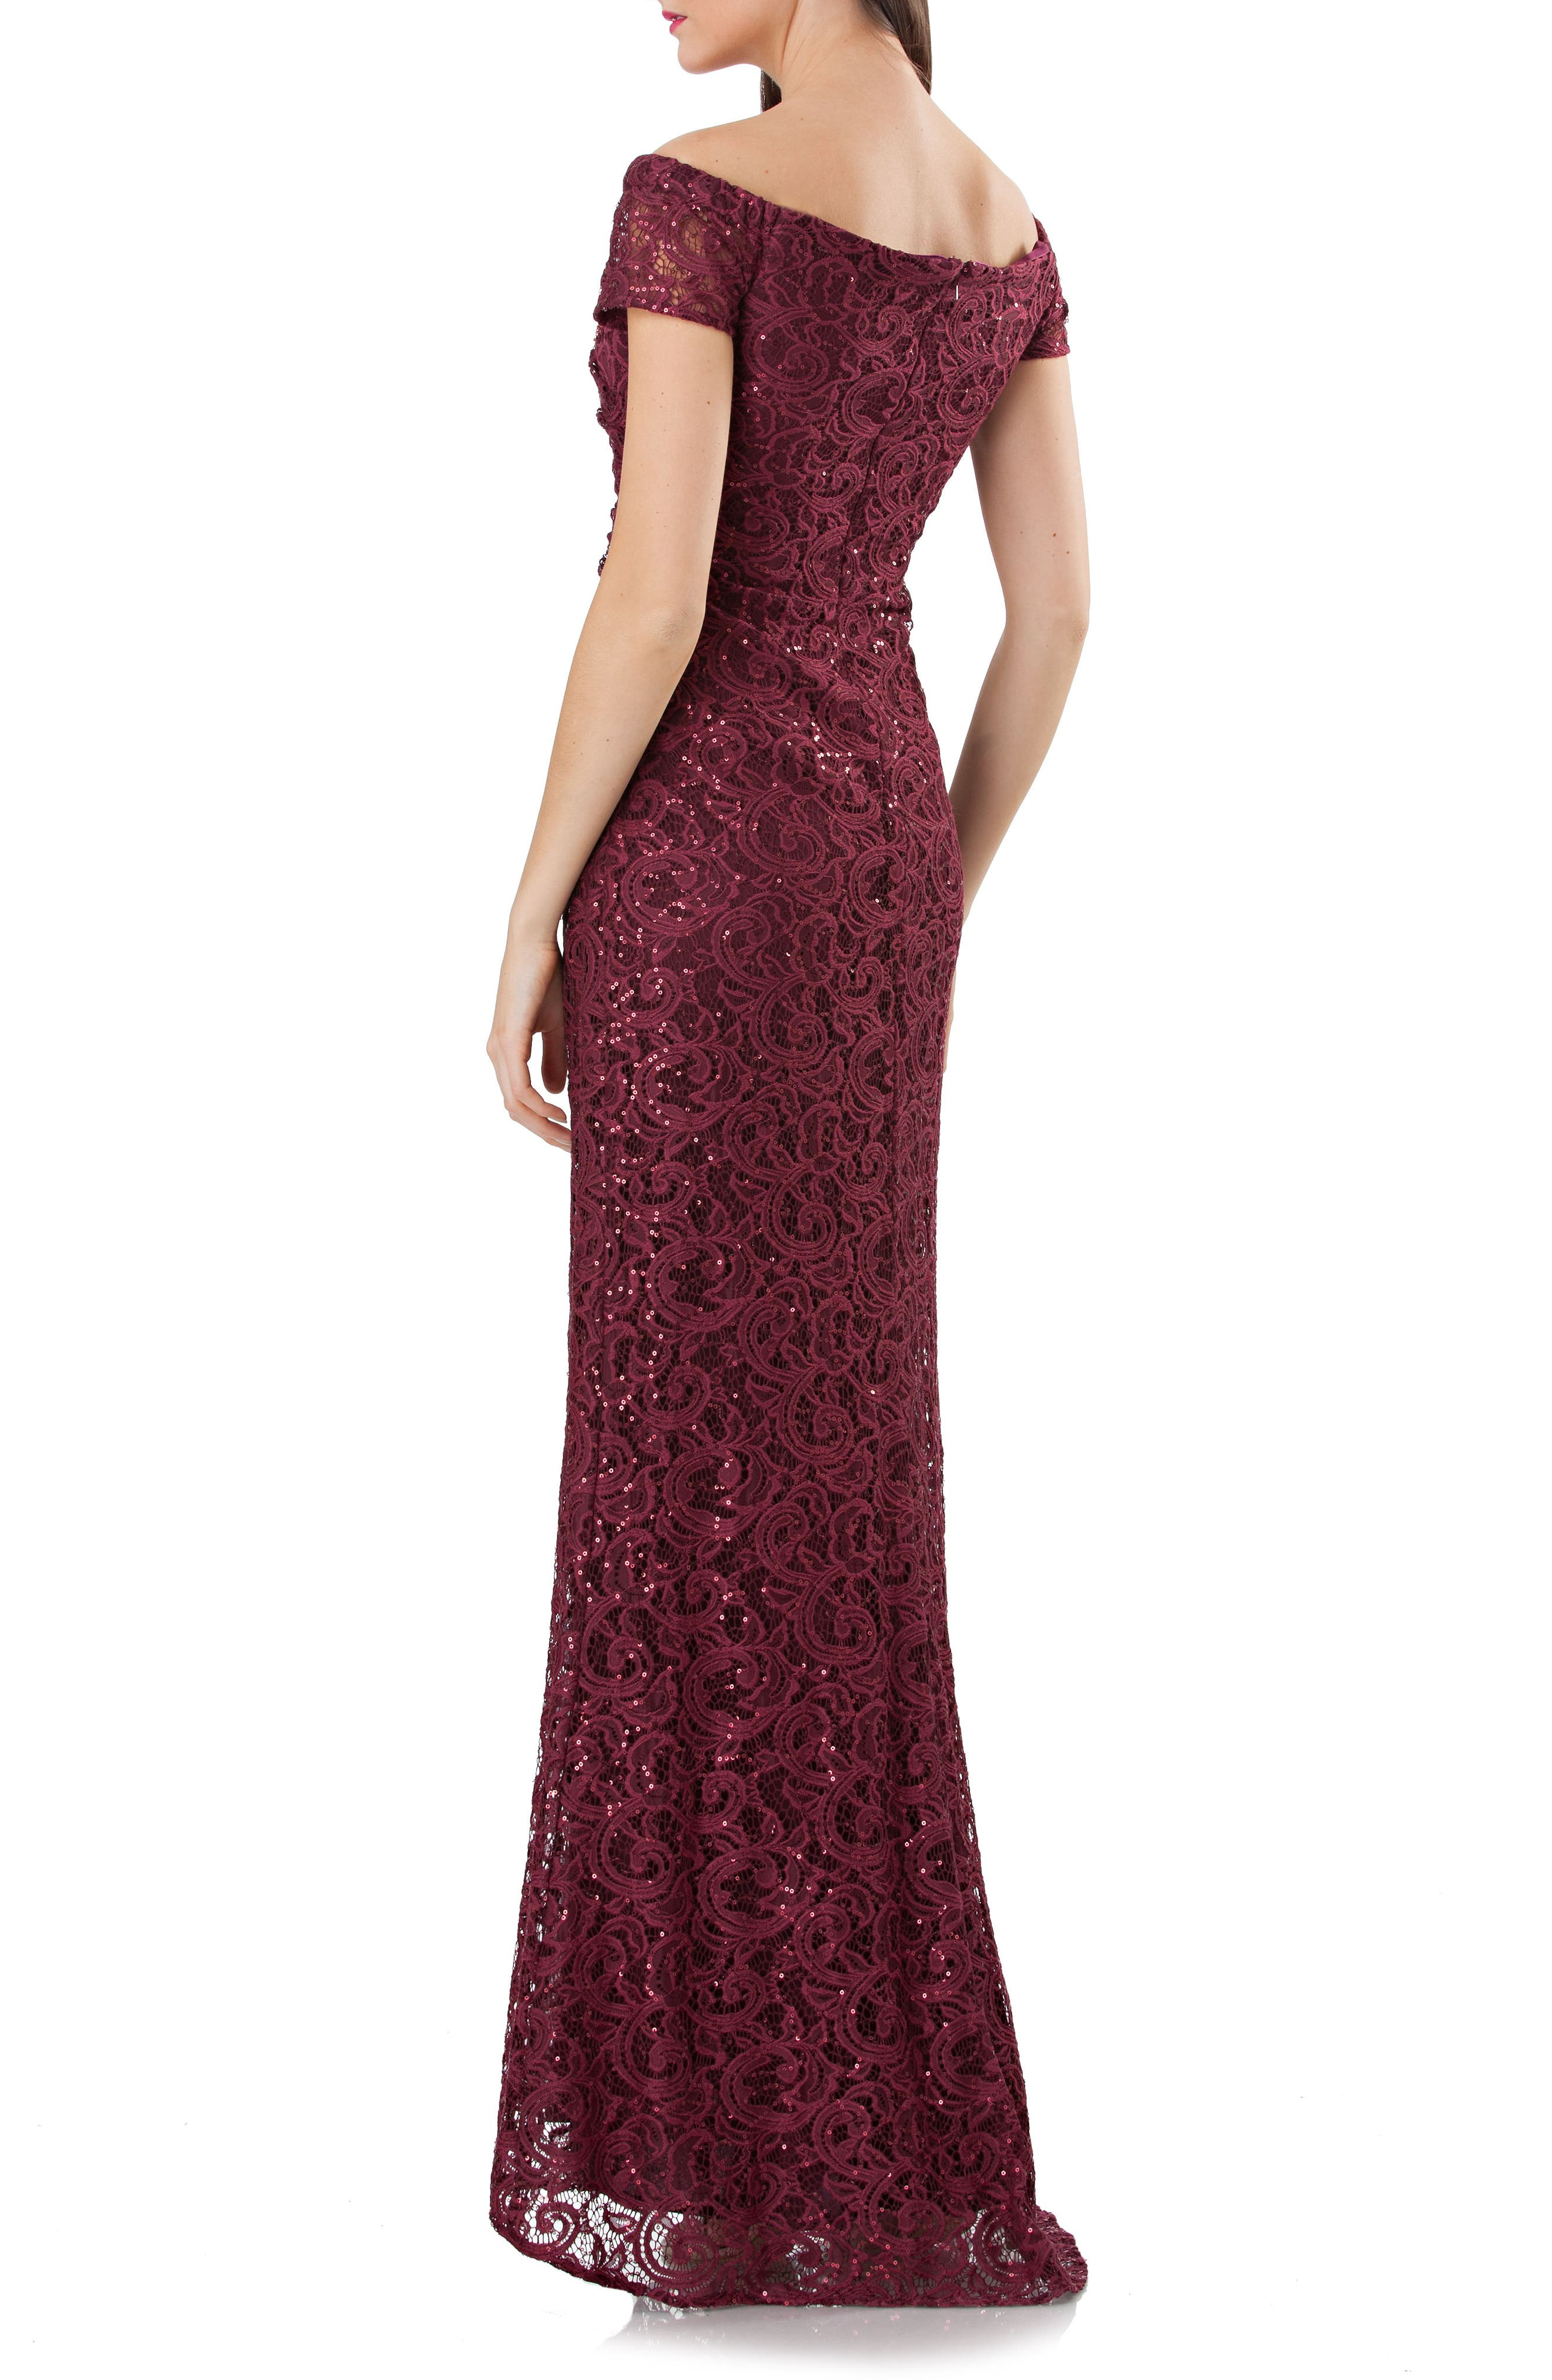 Sequin Lace Off the Shoulder Mermaid Gown,                             Alternate thumbnail 2, color,                             505